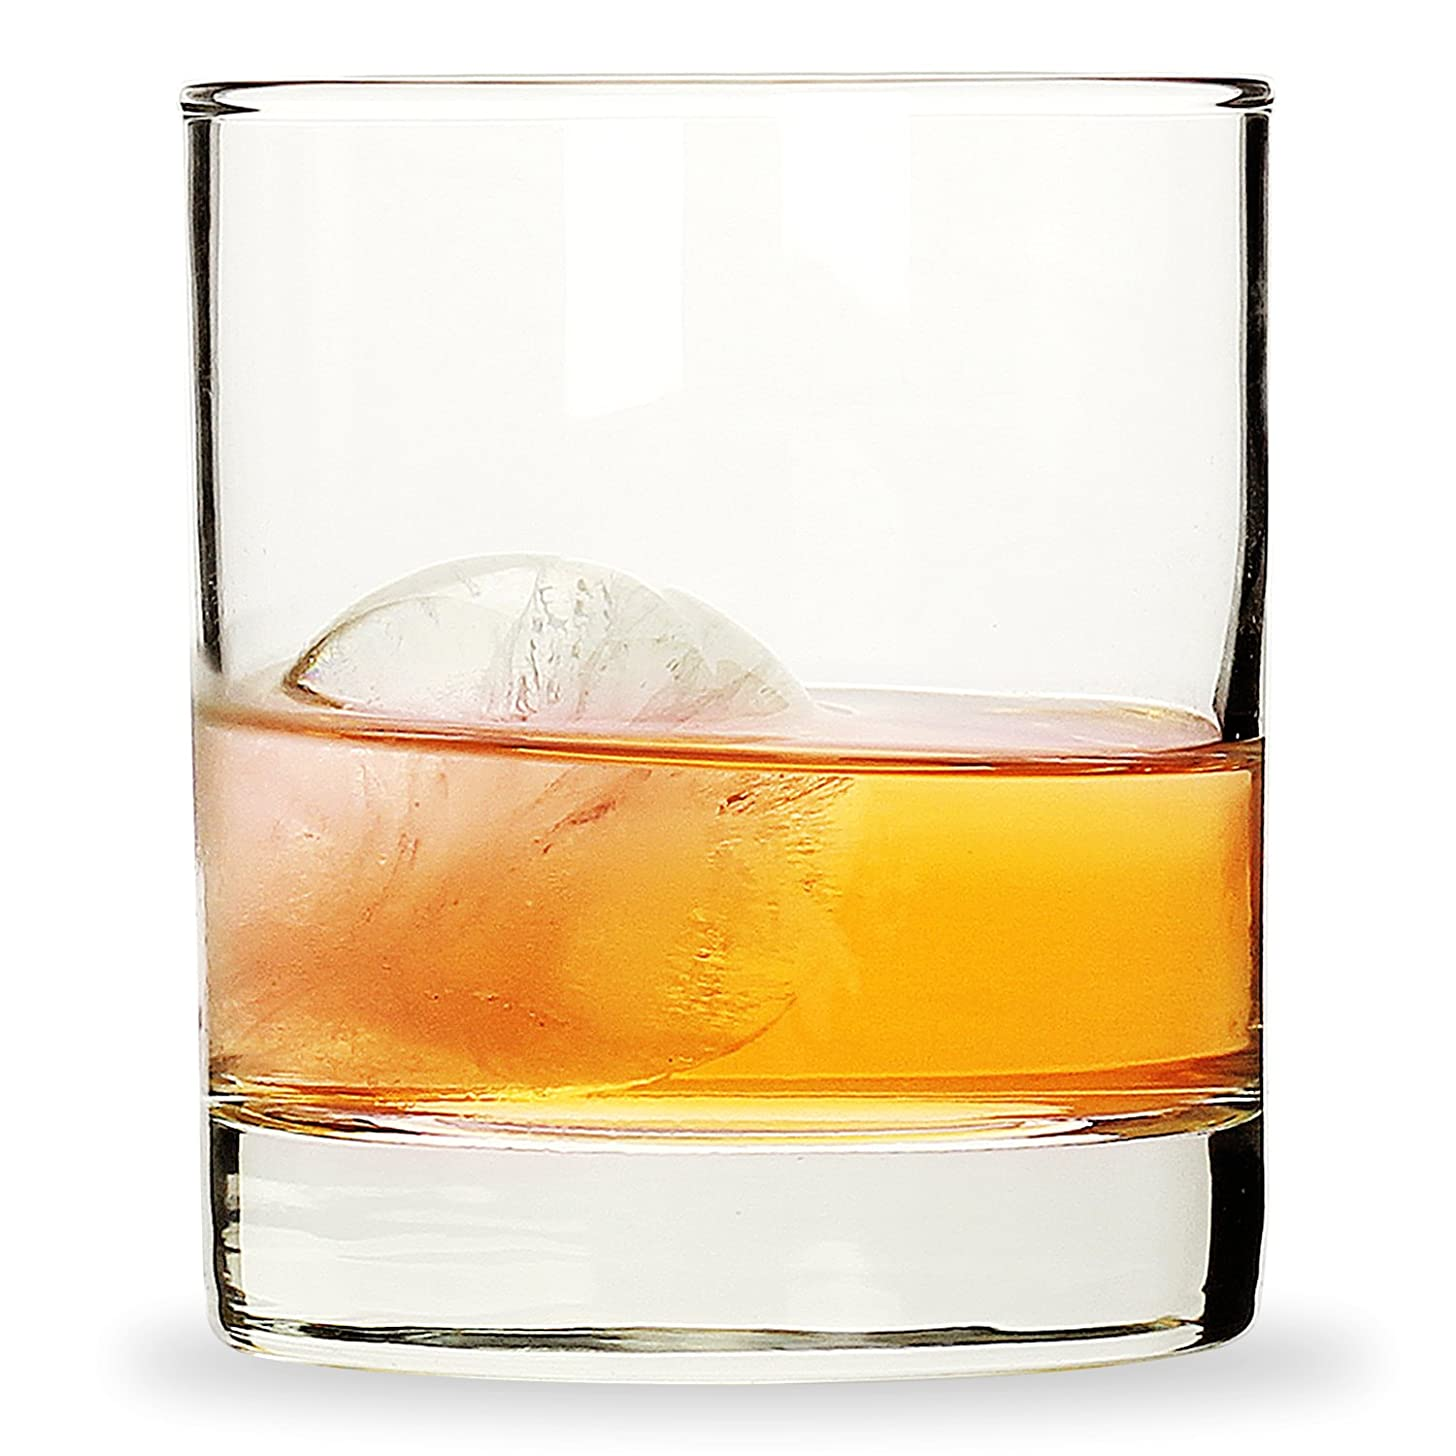 Whiskey Glasses 11 ounces Short Glasses,Set of 6 Rocks Style Glassware and Old Fashioned Drinking Glasses (11 ounces)